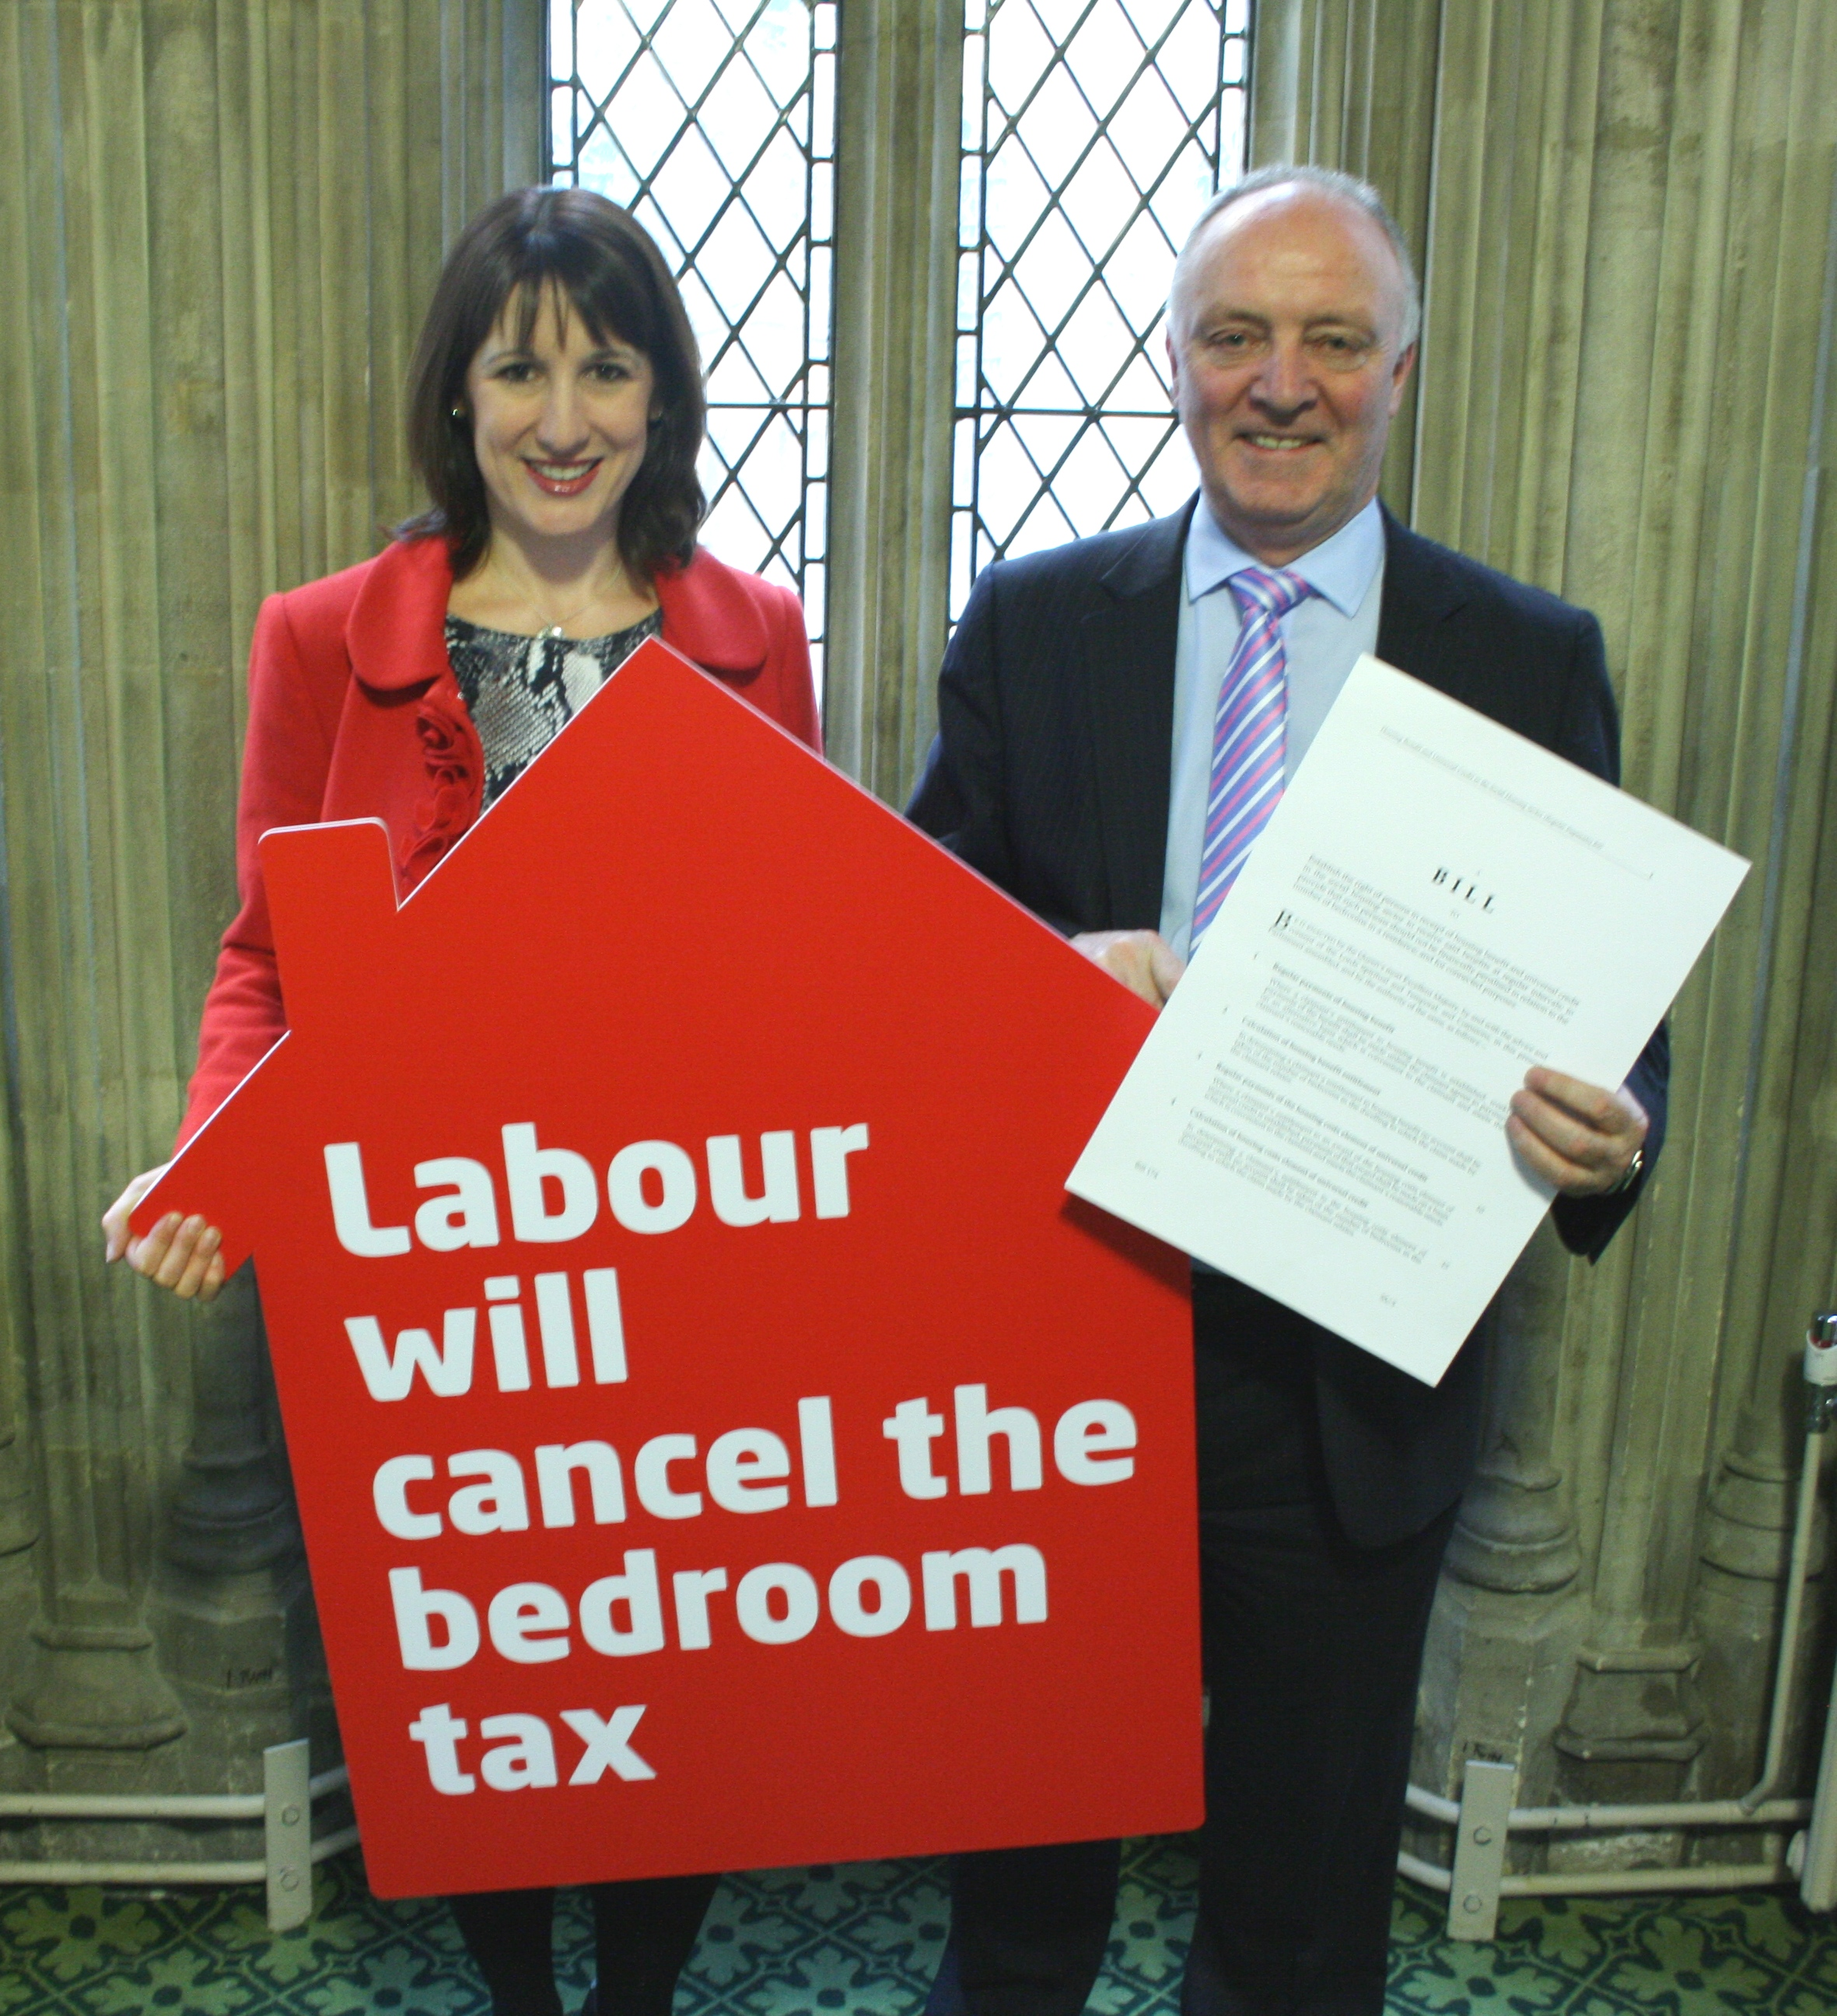 Bedroom_Tax_Bill.jpg